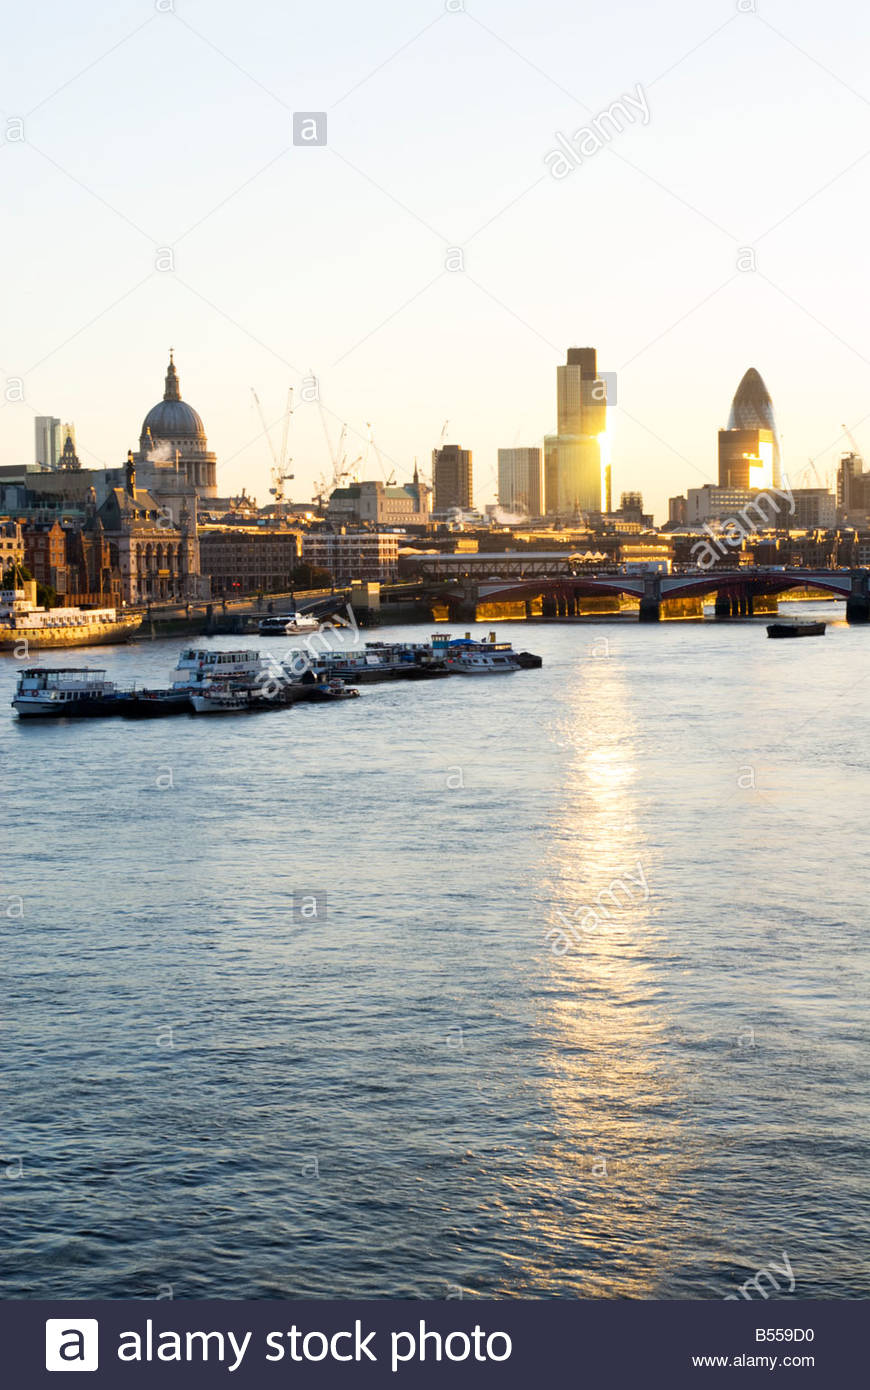 The River Thames and the city skyline at sunrise, London, UK. - Stock Image